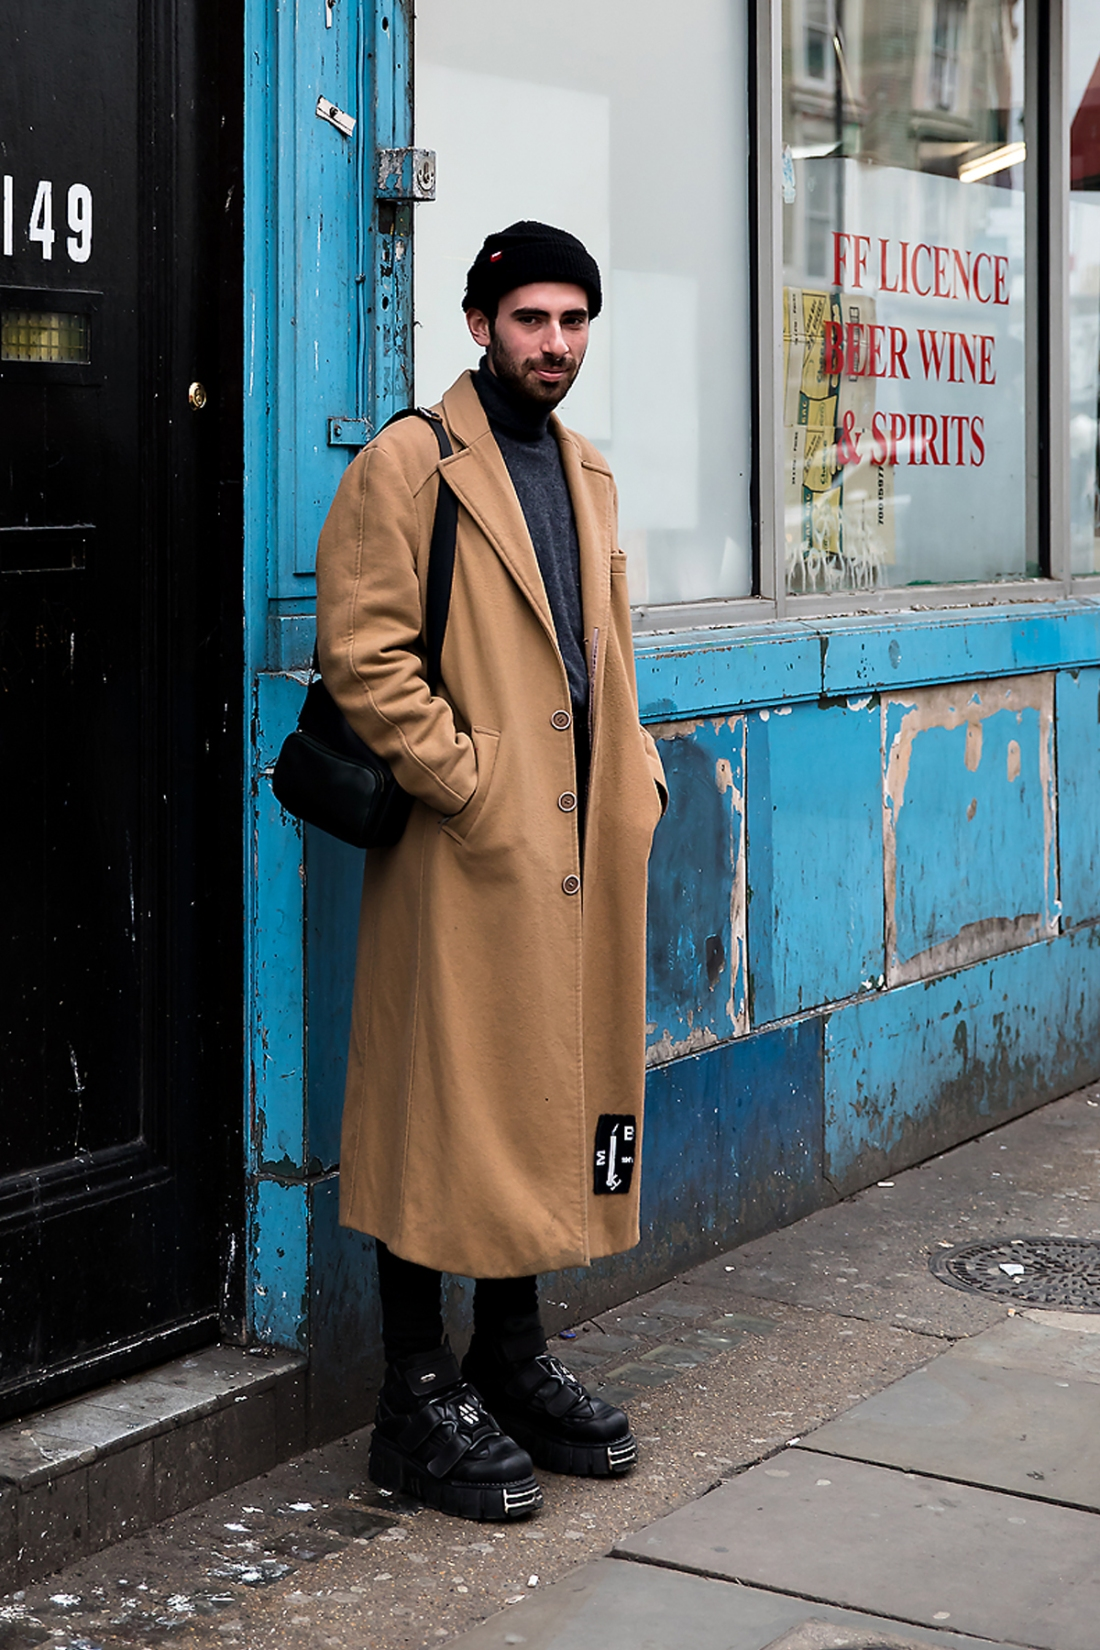 Gilberto Genco, Street Fashion 2017 in London.jpg